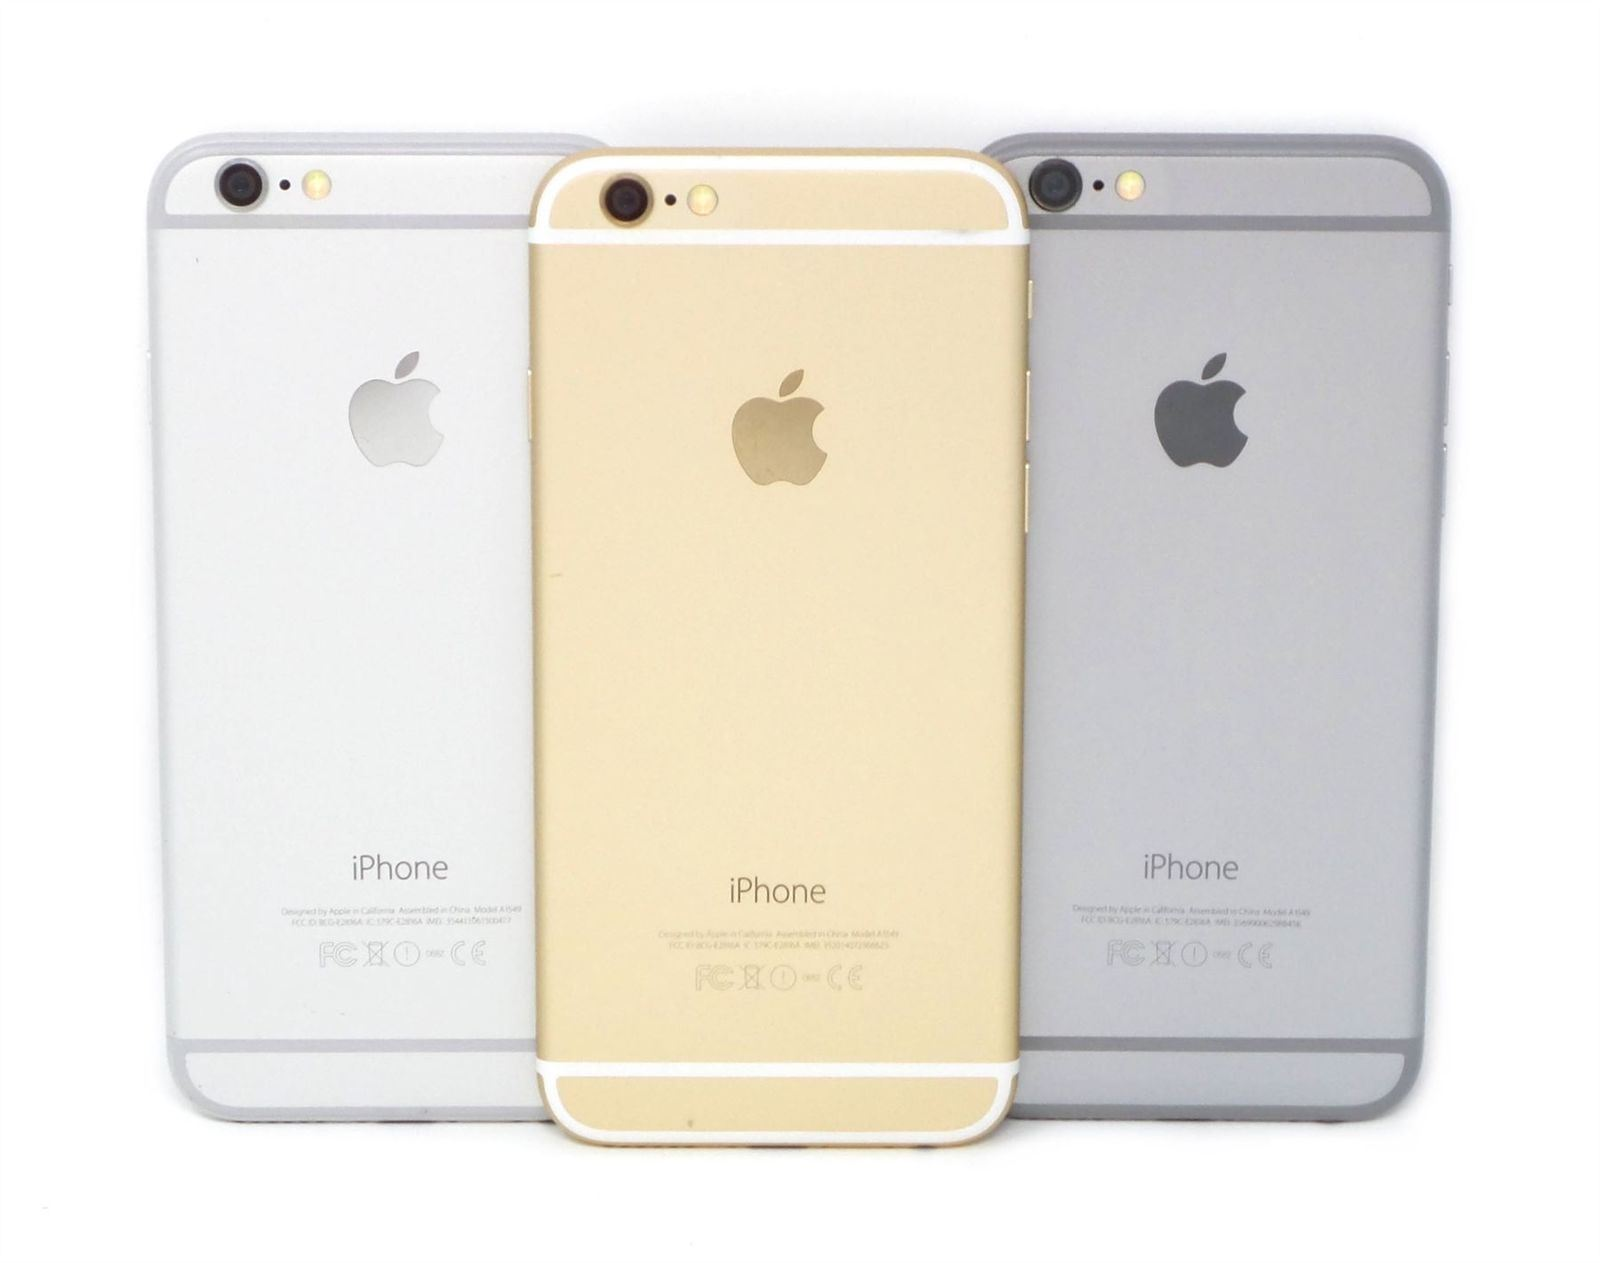 apple iphone 6 carrier options at\u0026t t mobile verizon boost mobile 16apple iphone 6 carrier options at\u0026t t mobile verizon boost mobile 16 64 128 new